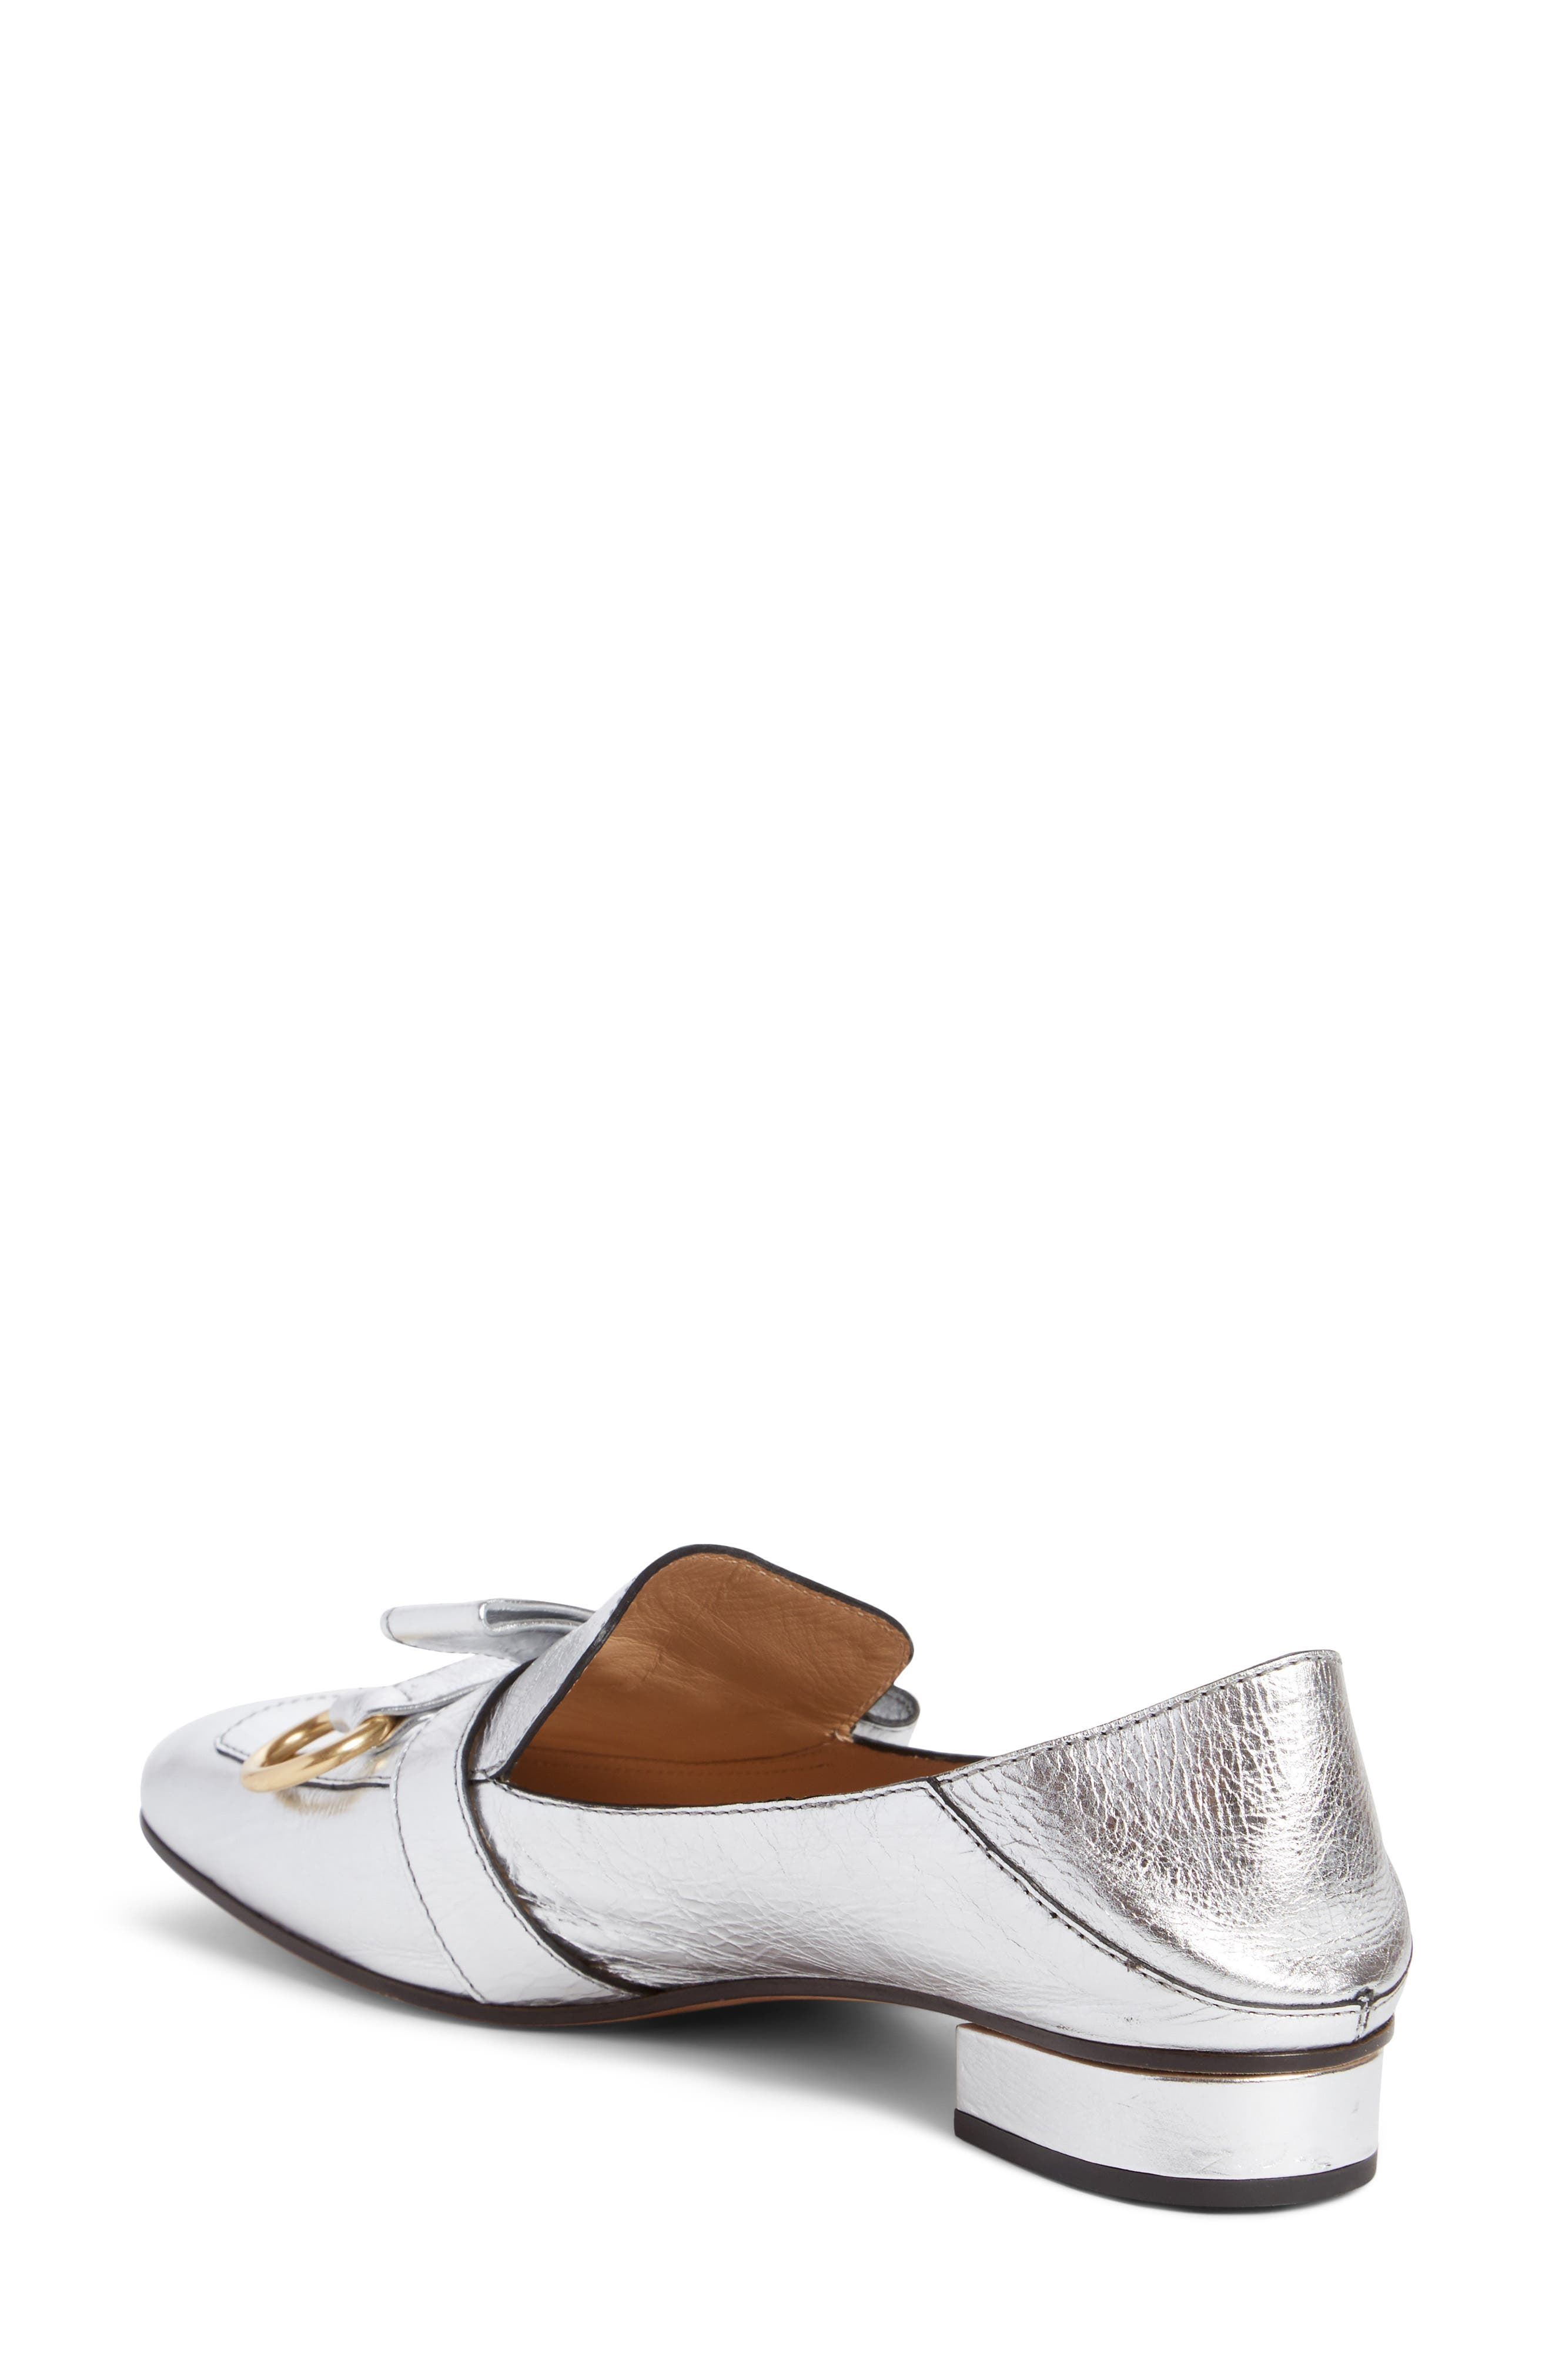 Quincey Convertible Loafer,                             Alternate thumbnail 2, color,